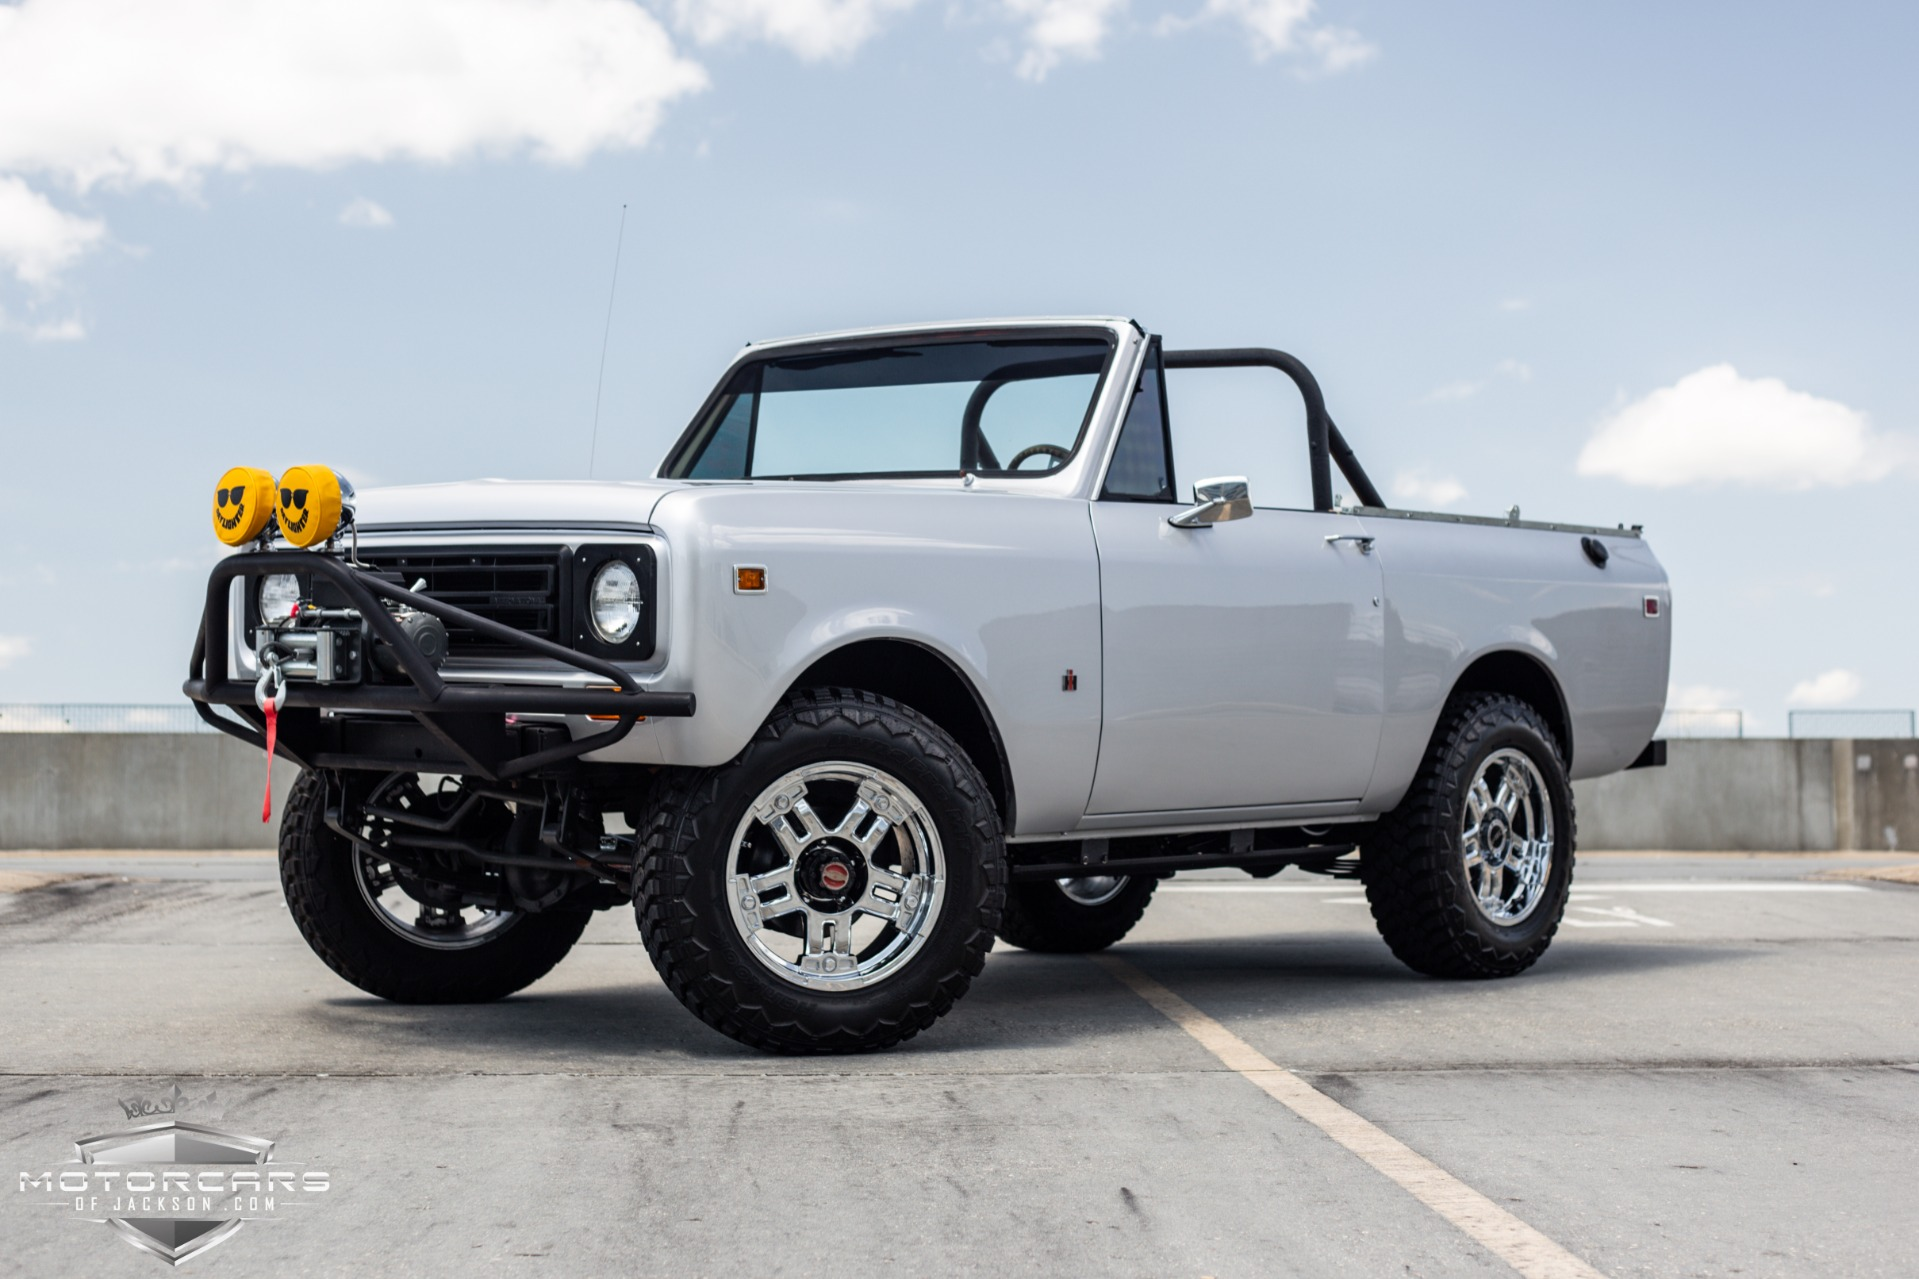 1979 International Harvester Scout II Stock # D29094 for